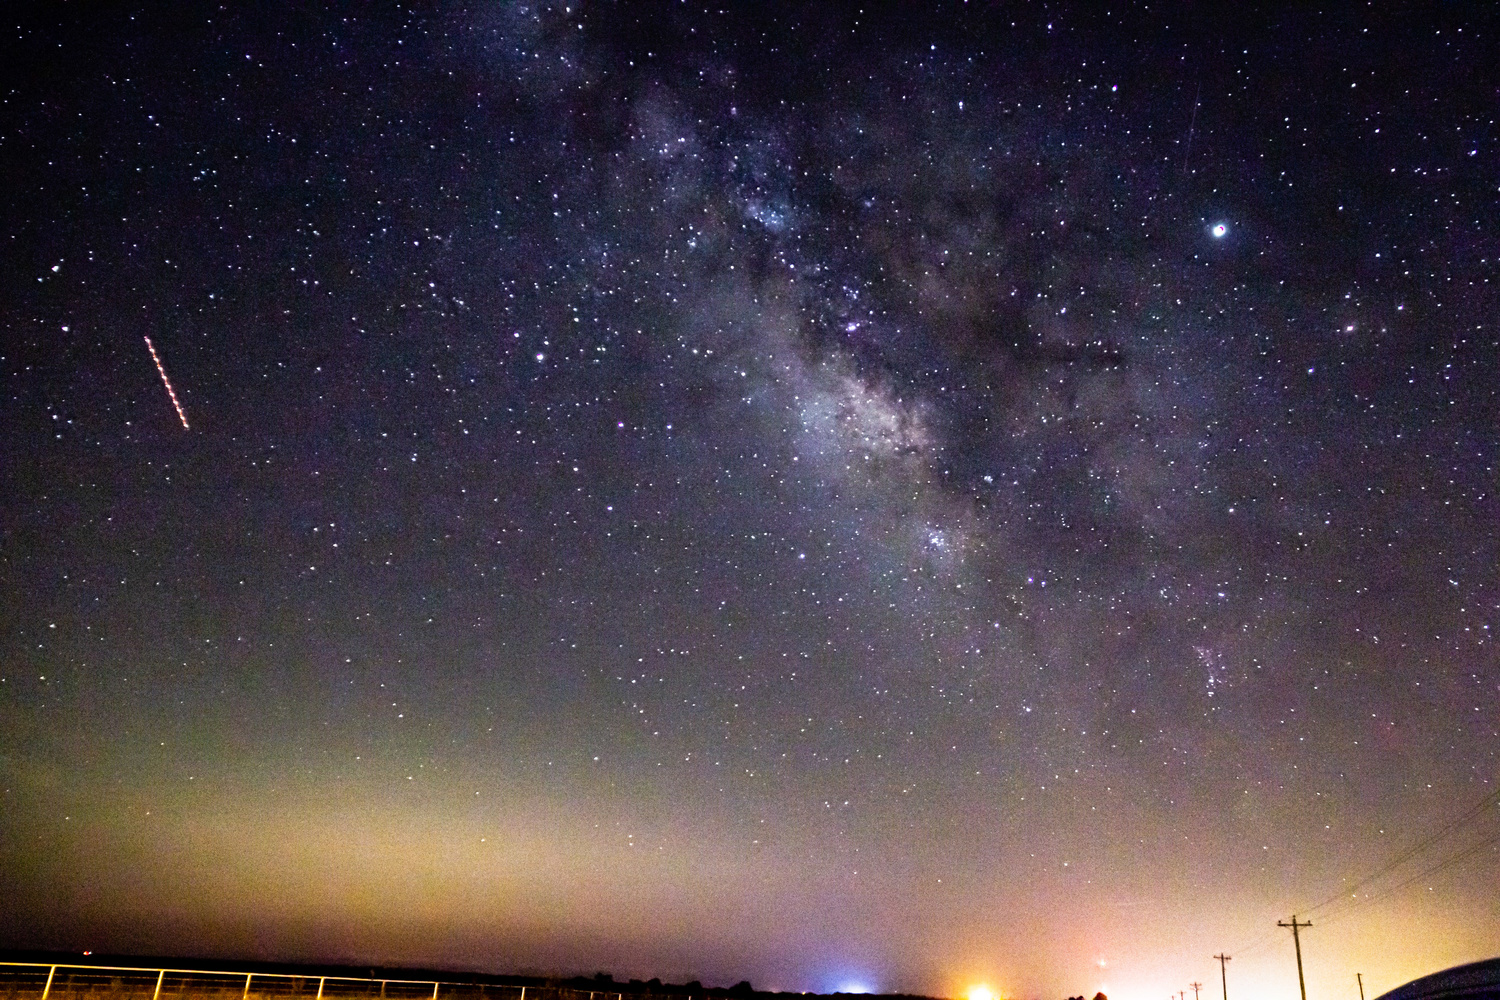 A plane traveling with the milkyway by Bobby Wood